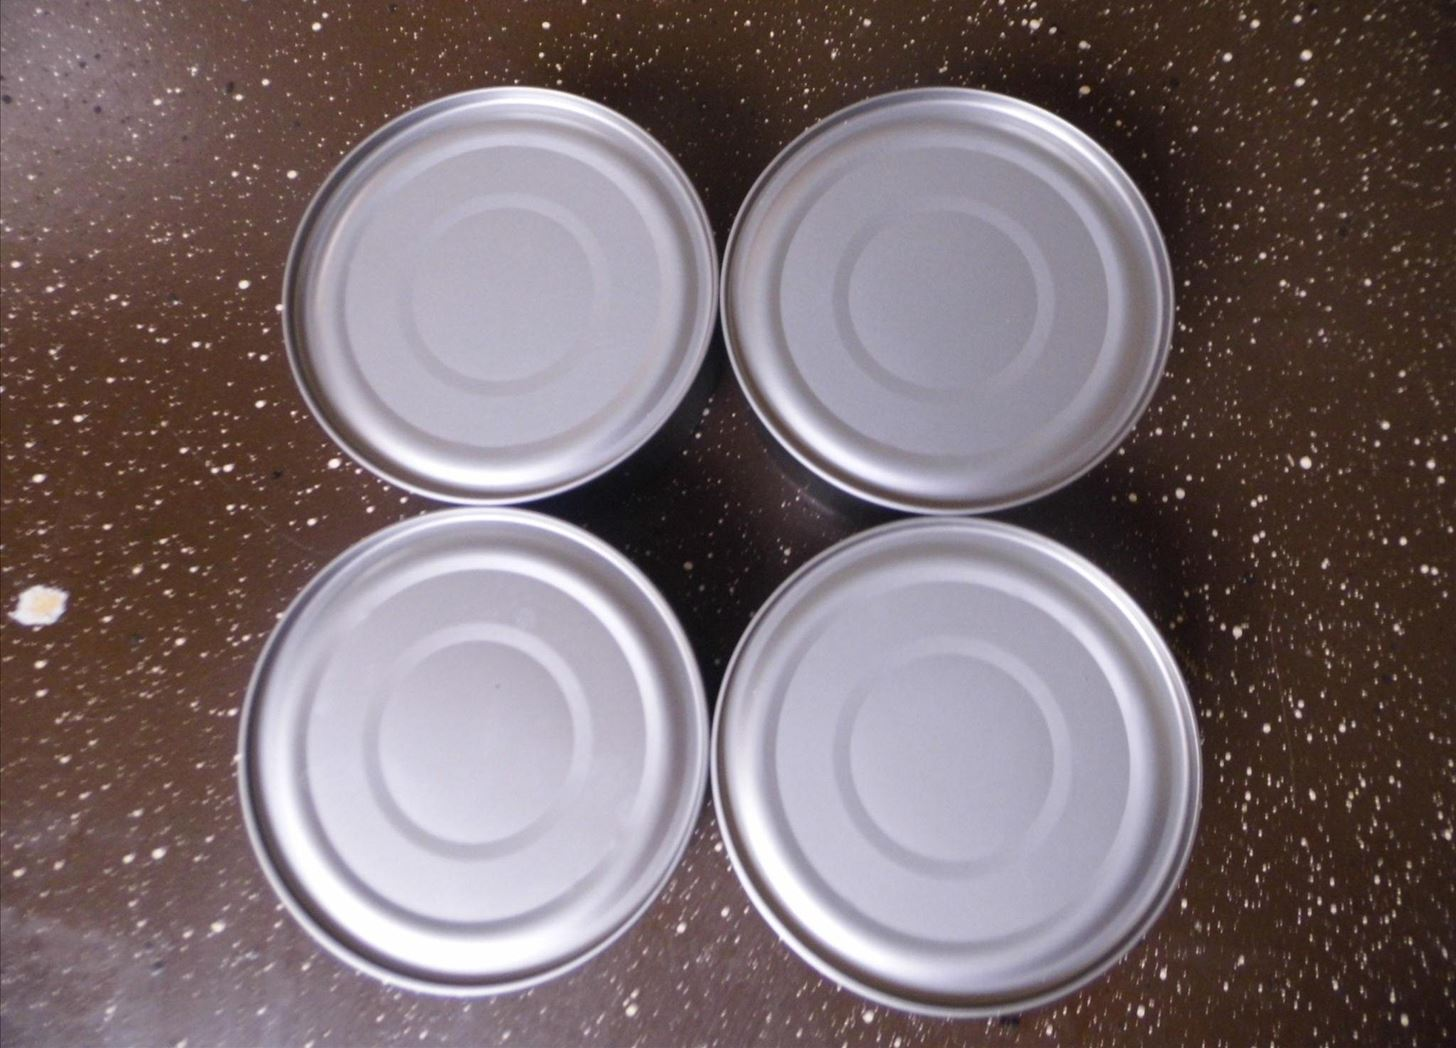 DIY Tin Can Cookie Cutters from Recycled Tuna Fish Cans